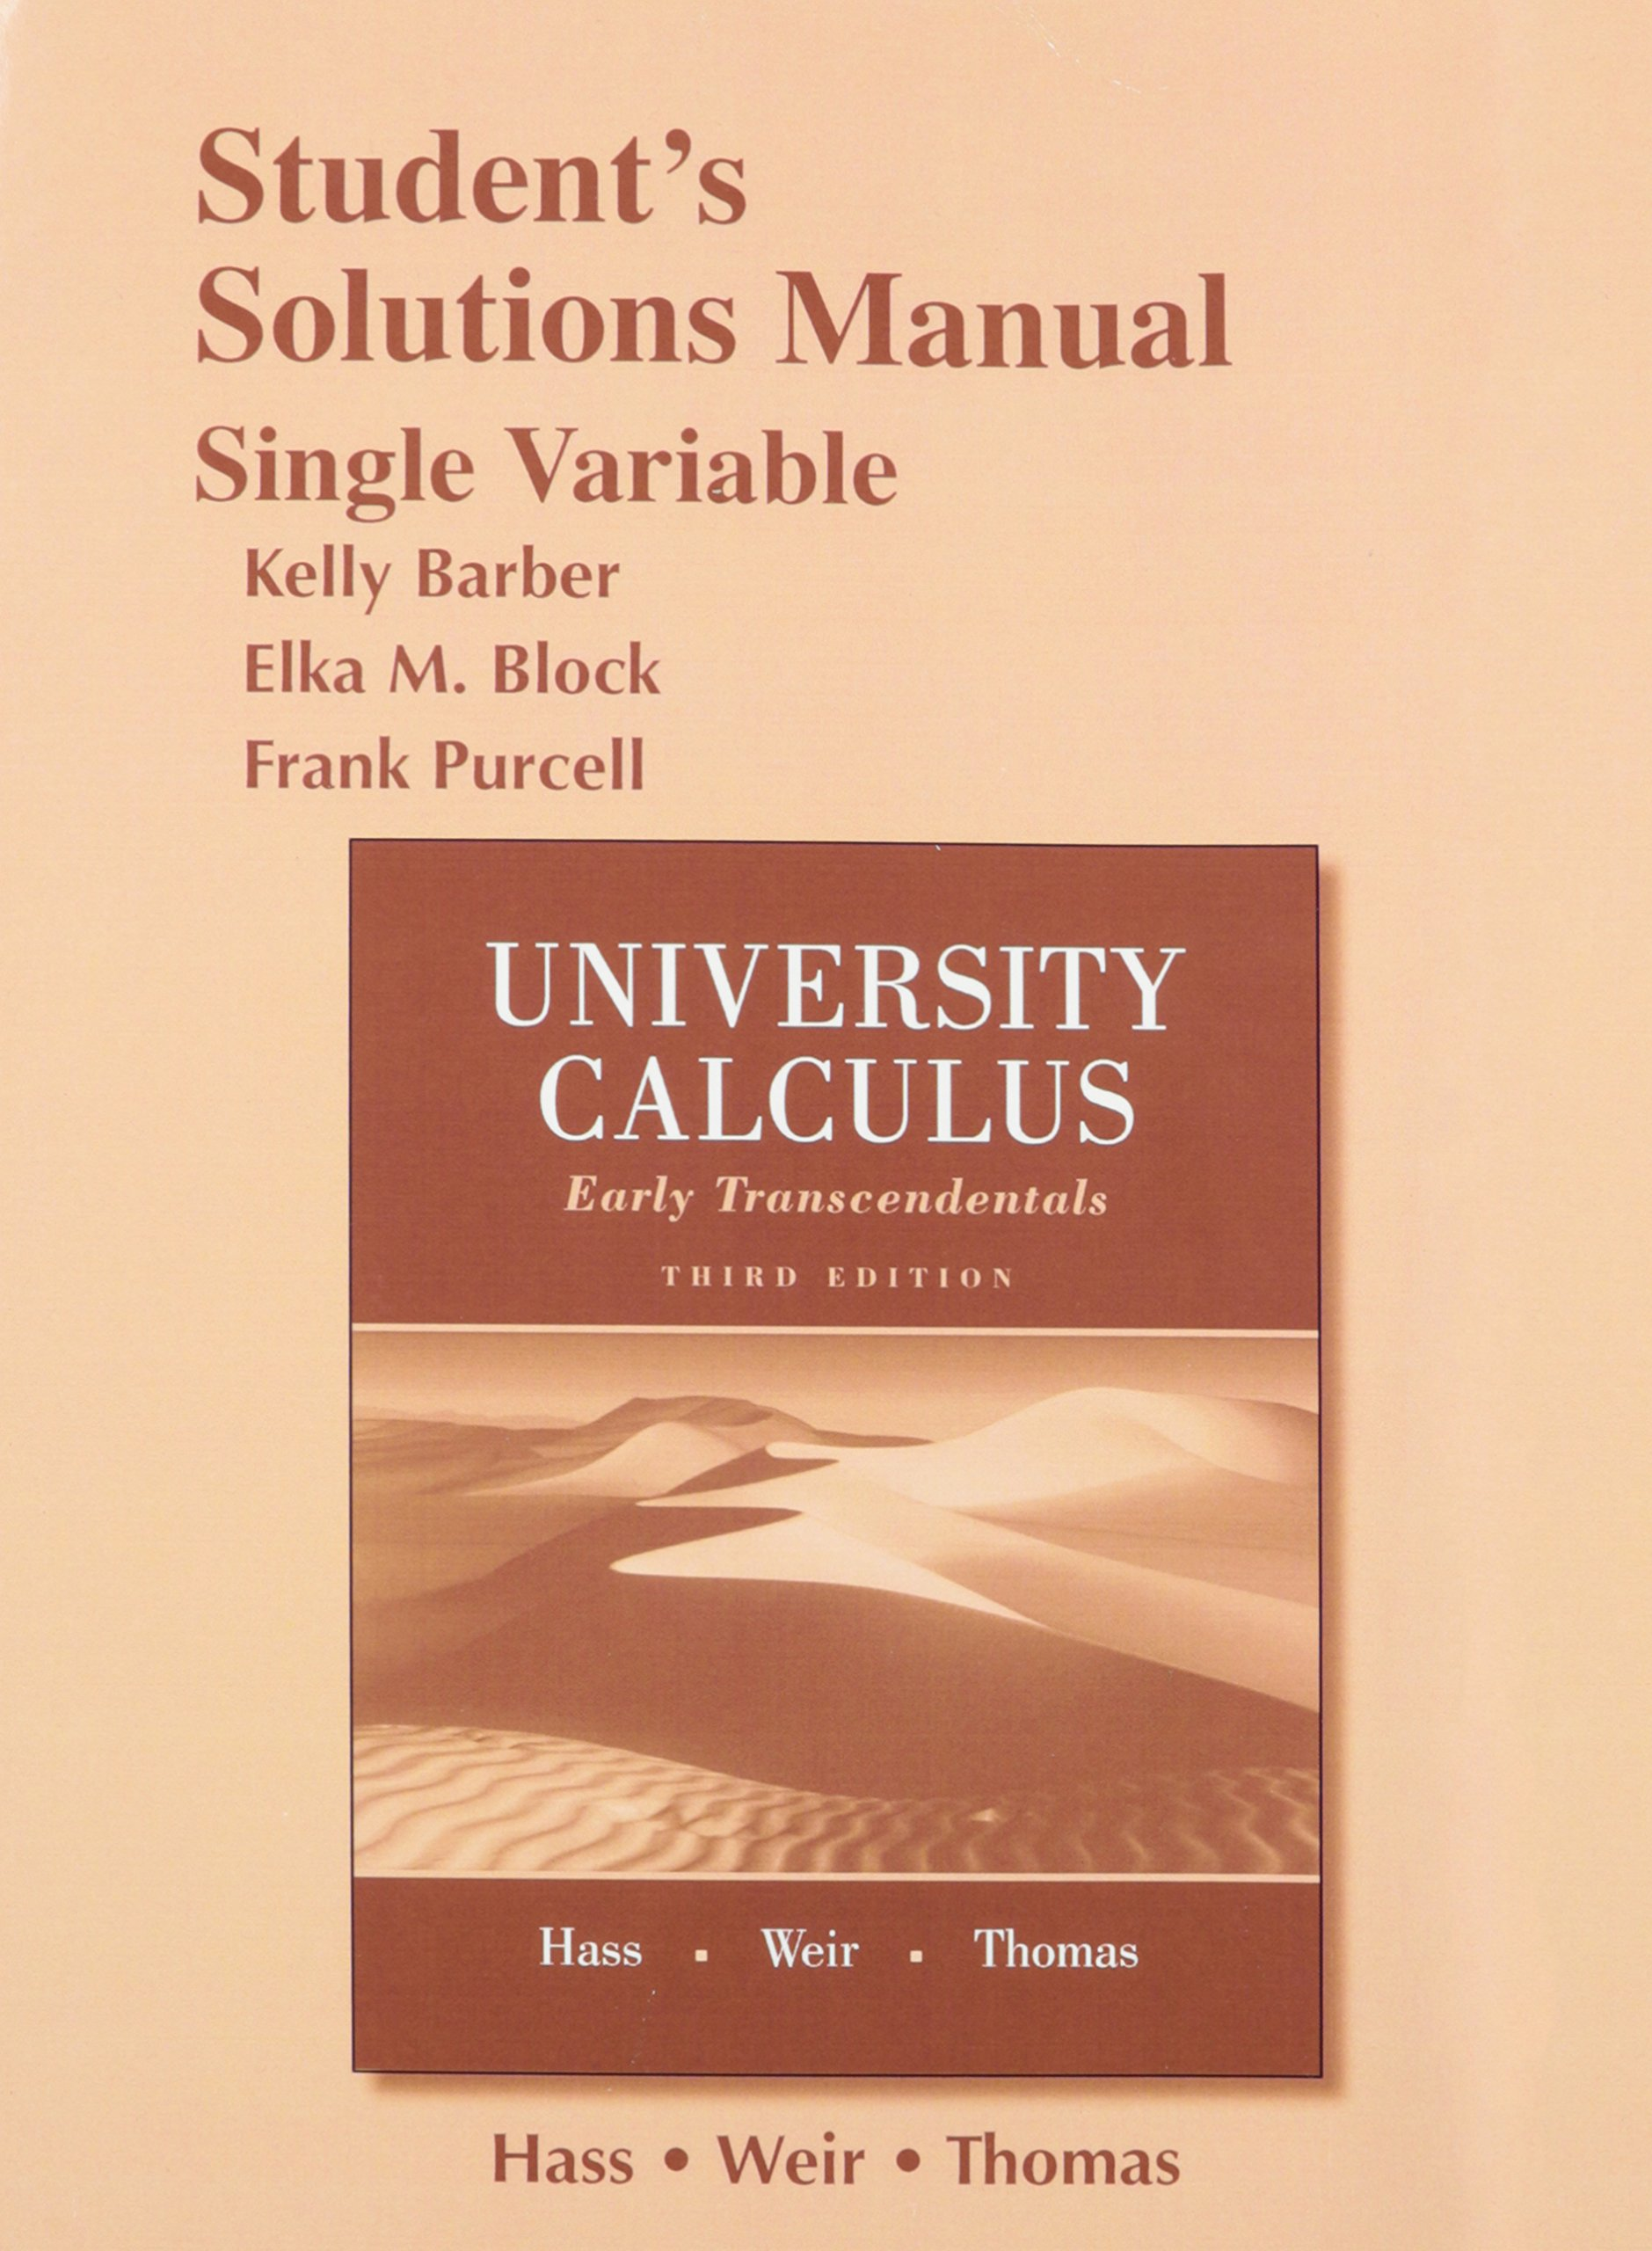 Student Solutions Manual for University Calculus: Early Transcendentals,  Single Variable: Joel R. Hass, Maurice D. Weir, George B. Thomas Jr.: ...